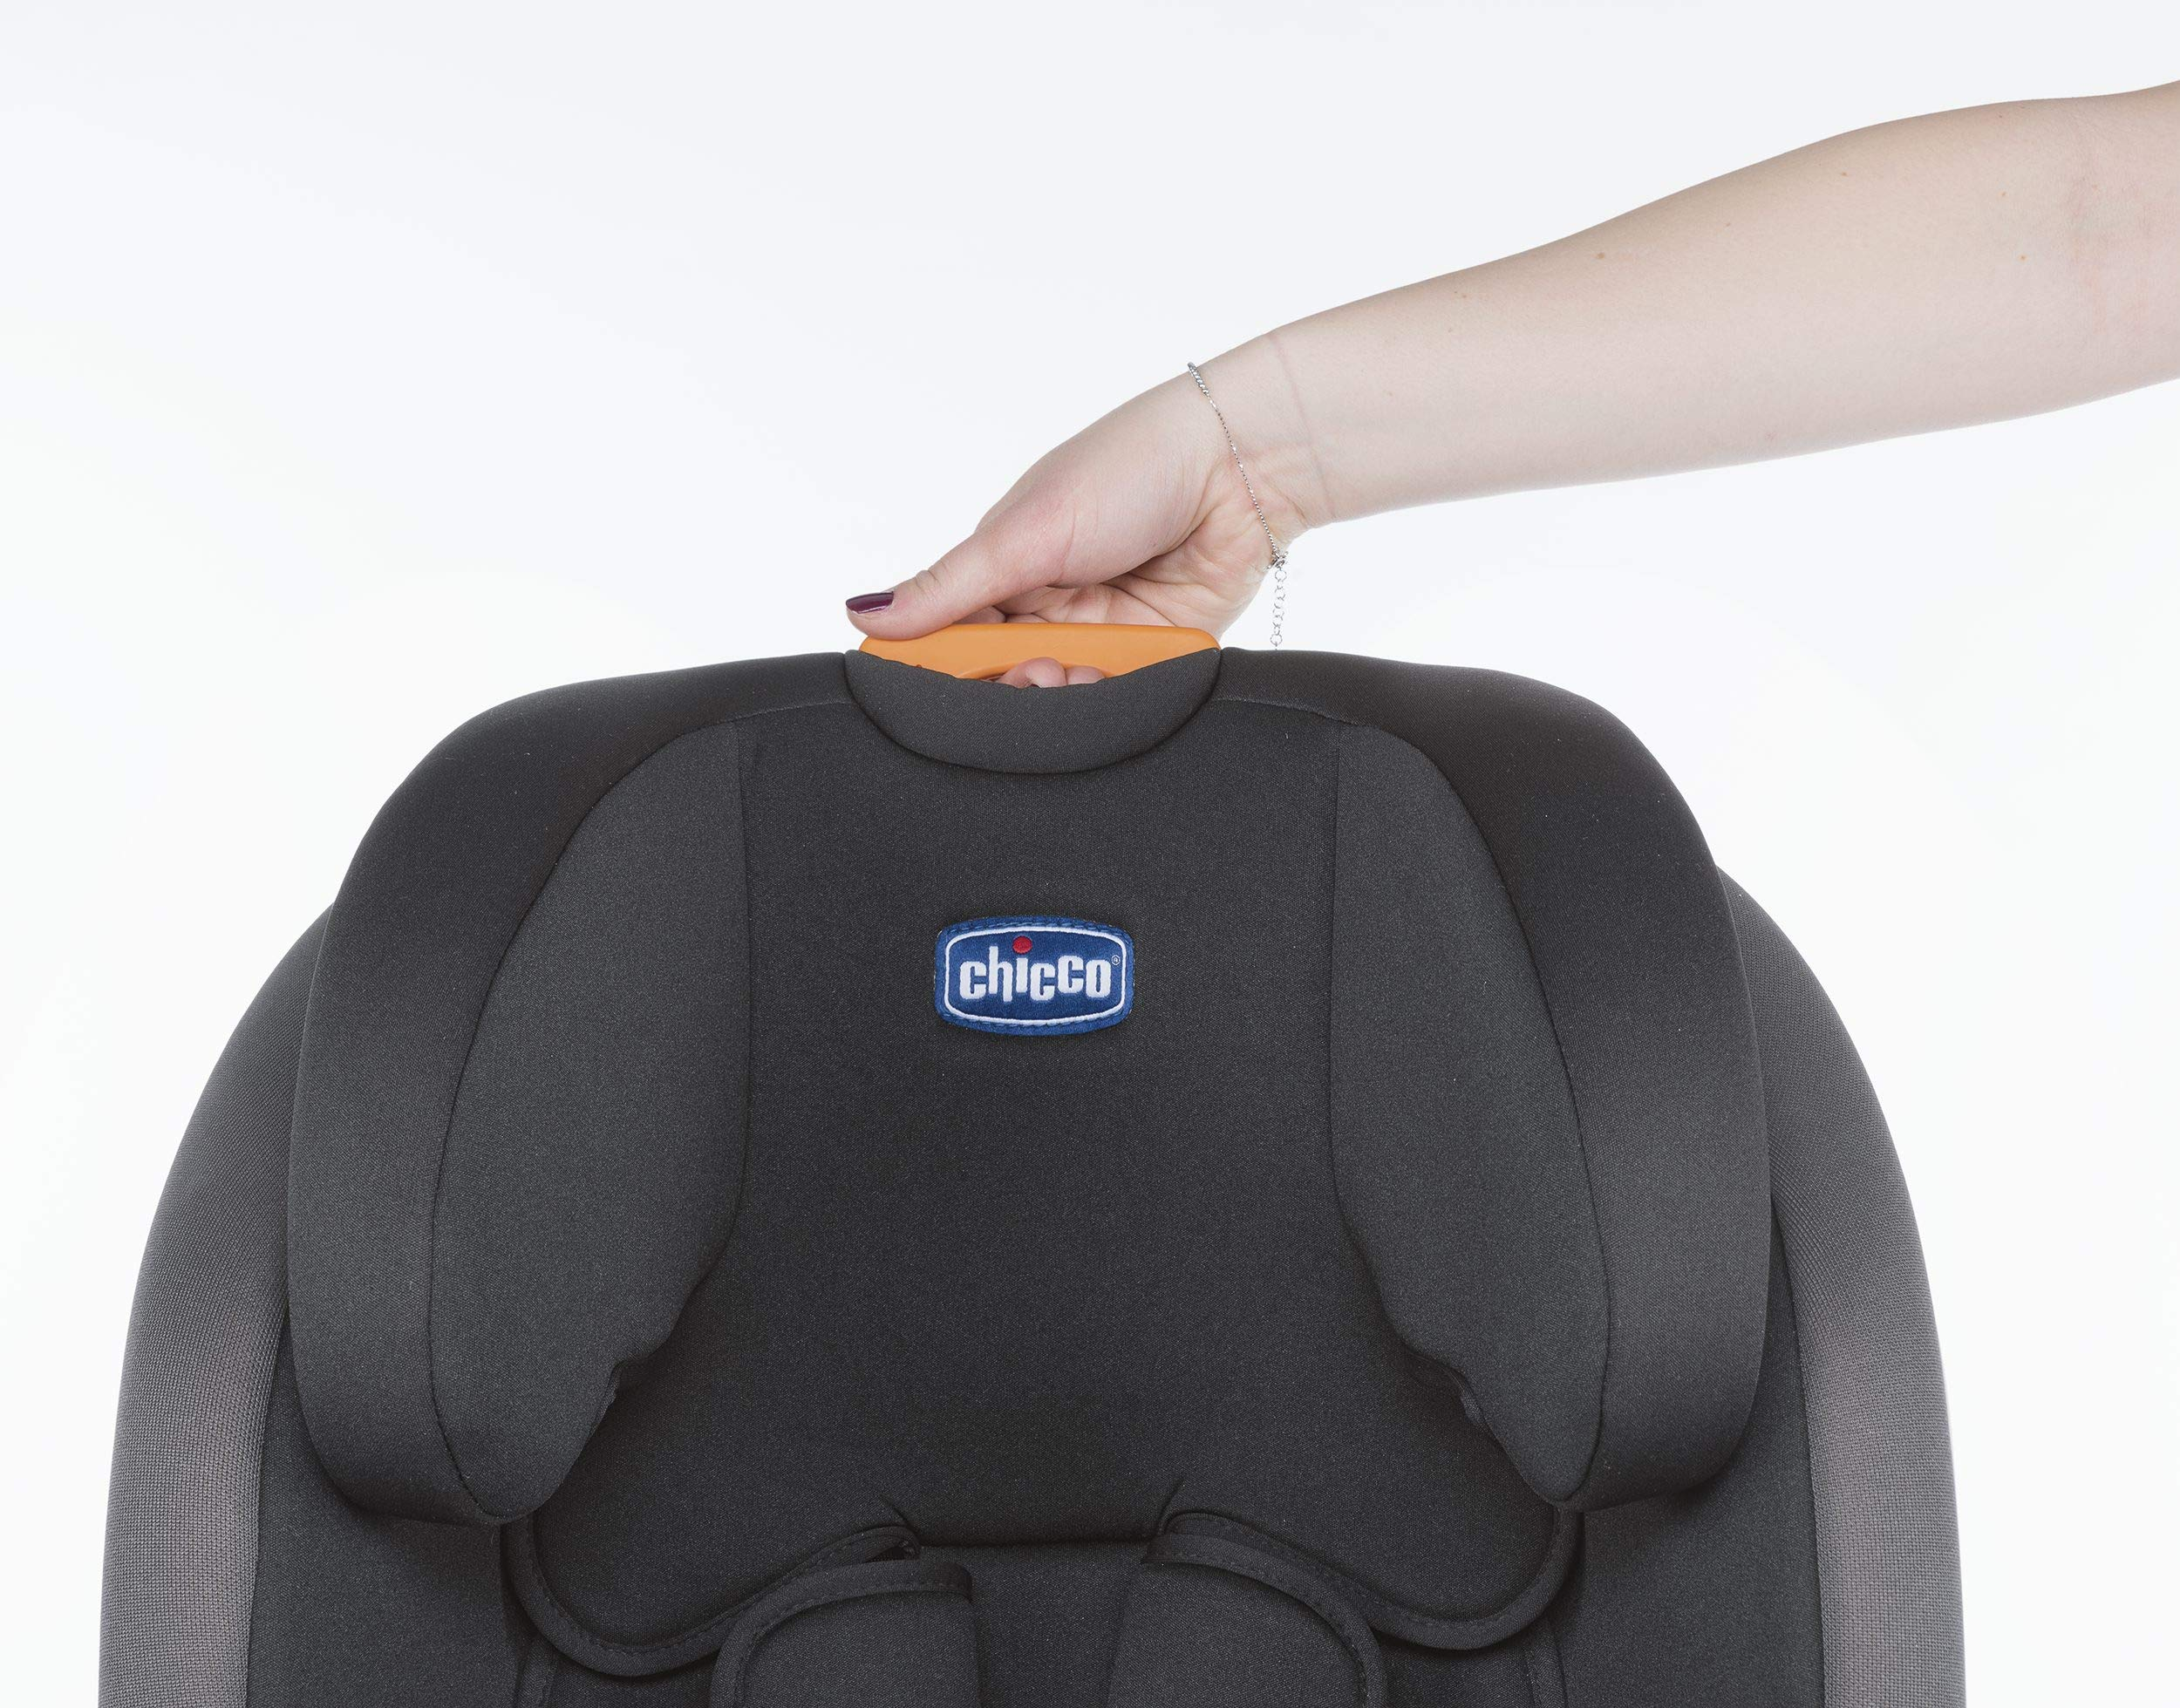 Chicco Youniverse Isofix Car Seat, Group 1/2/3 Chicco The isofix system with top tether enables an easy and quicker installation Compatible with all cars Special side safety system 3